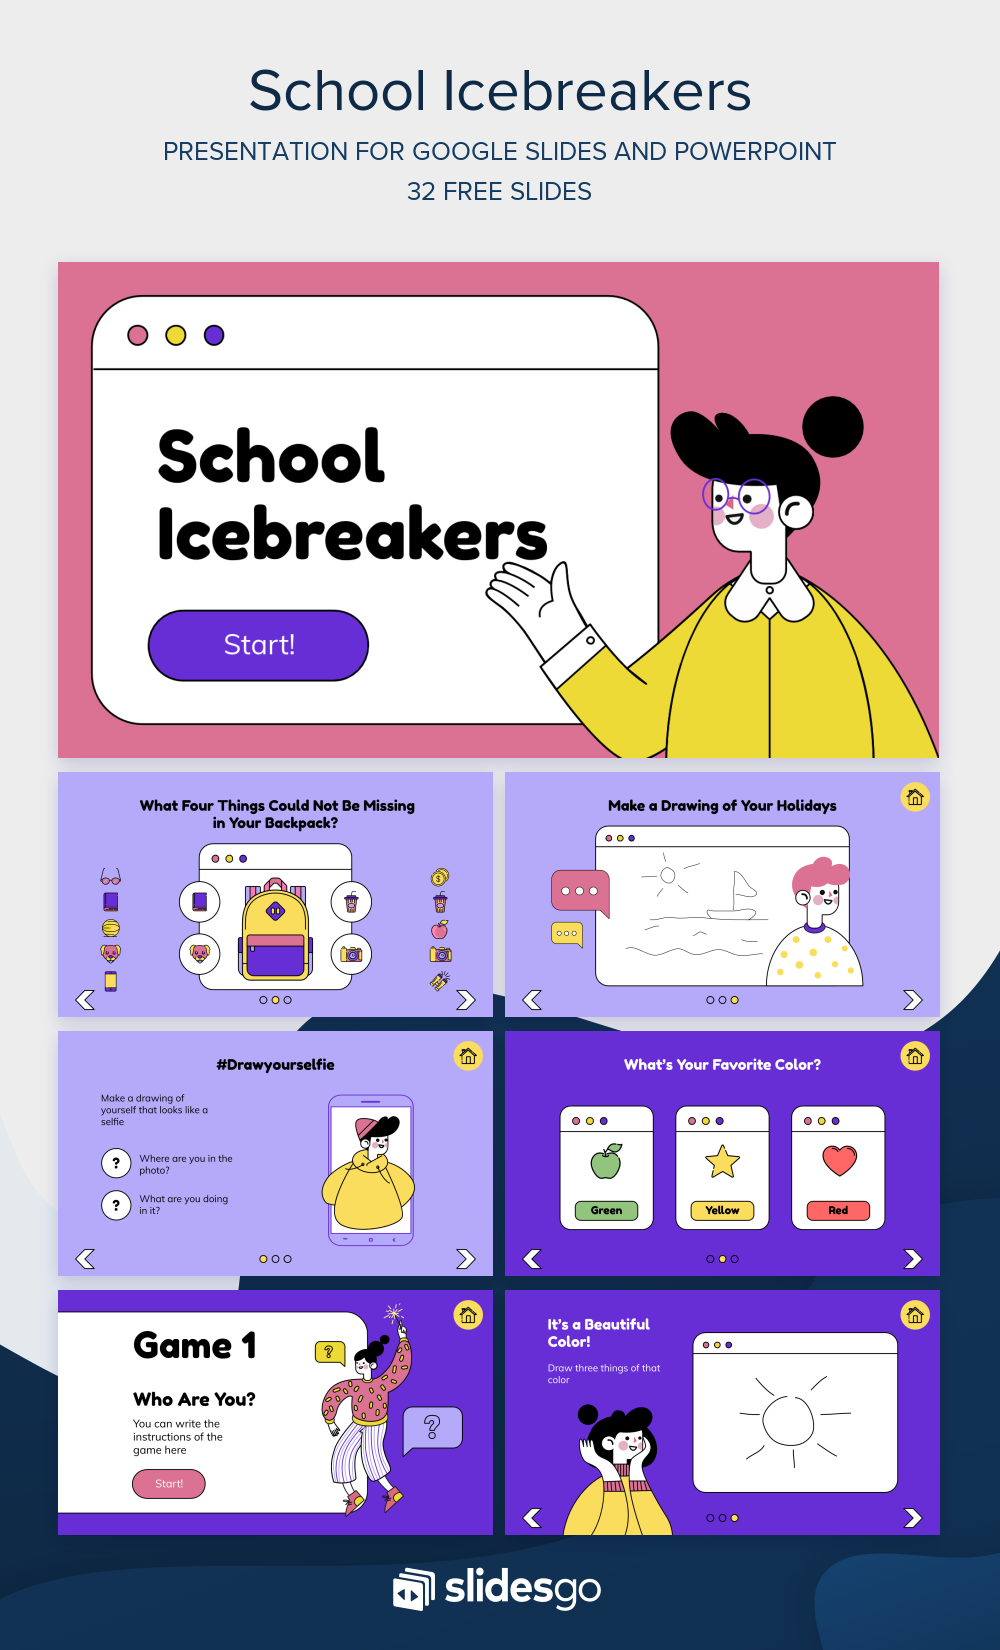 Go Back To School And Begin Your Classes With This Funny Icebreaker Google Slides Theme A School Icebreakers Powerpoint Presentation Design Ppt Template Design